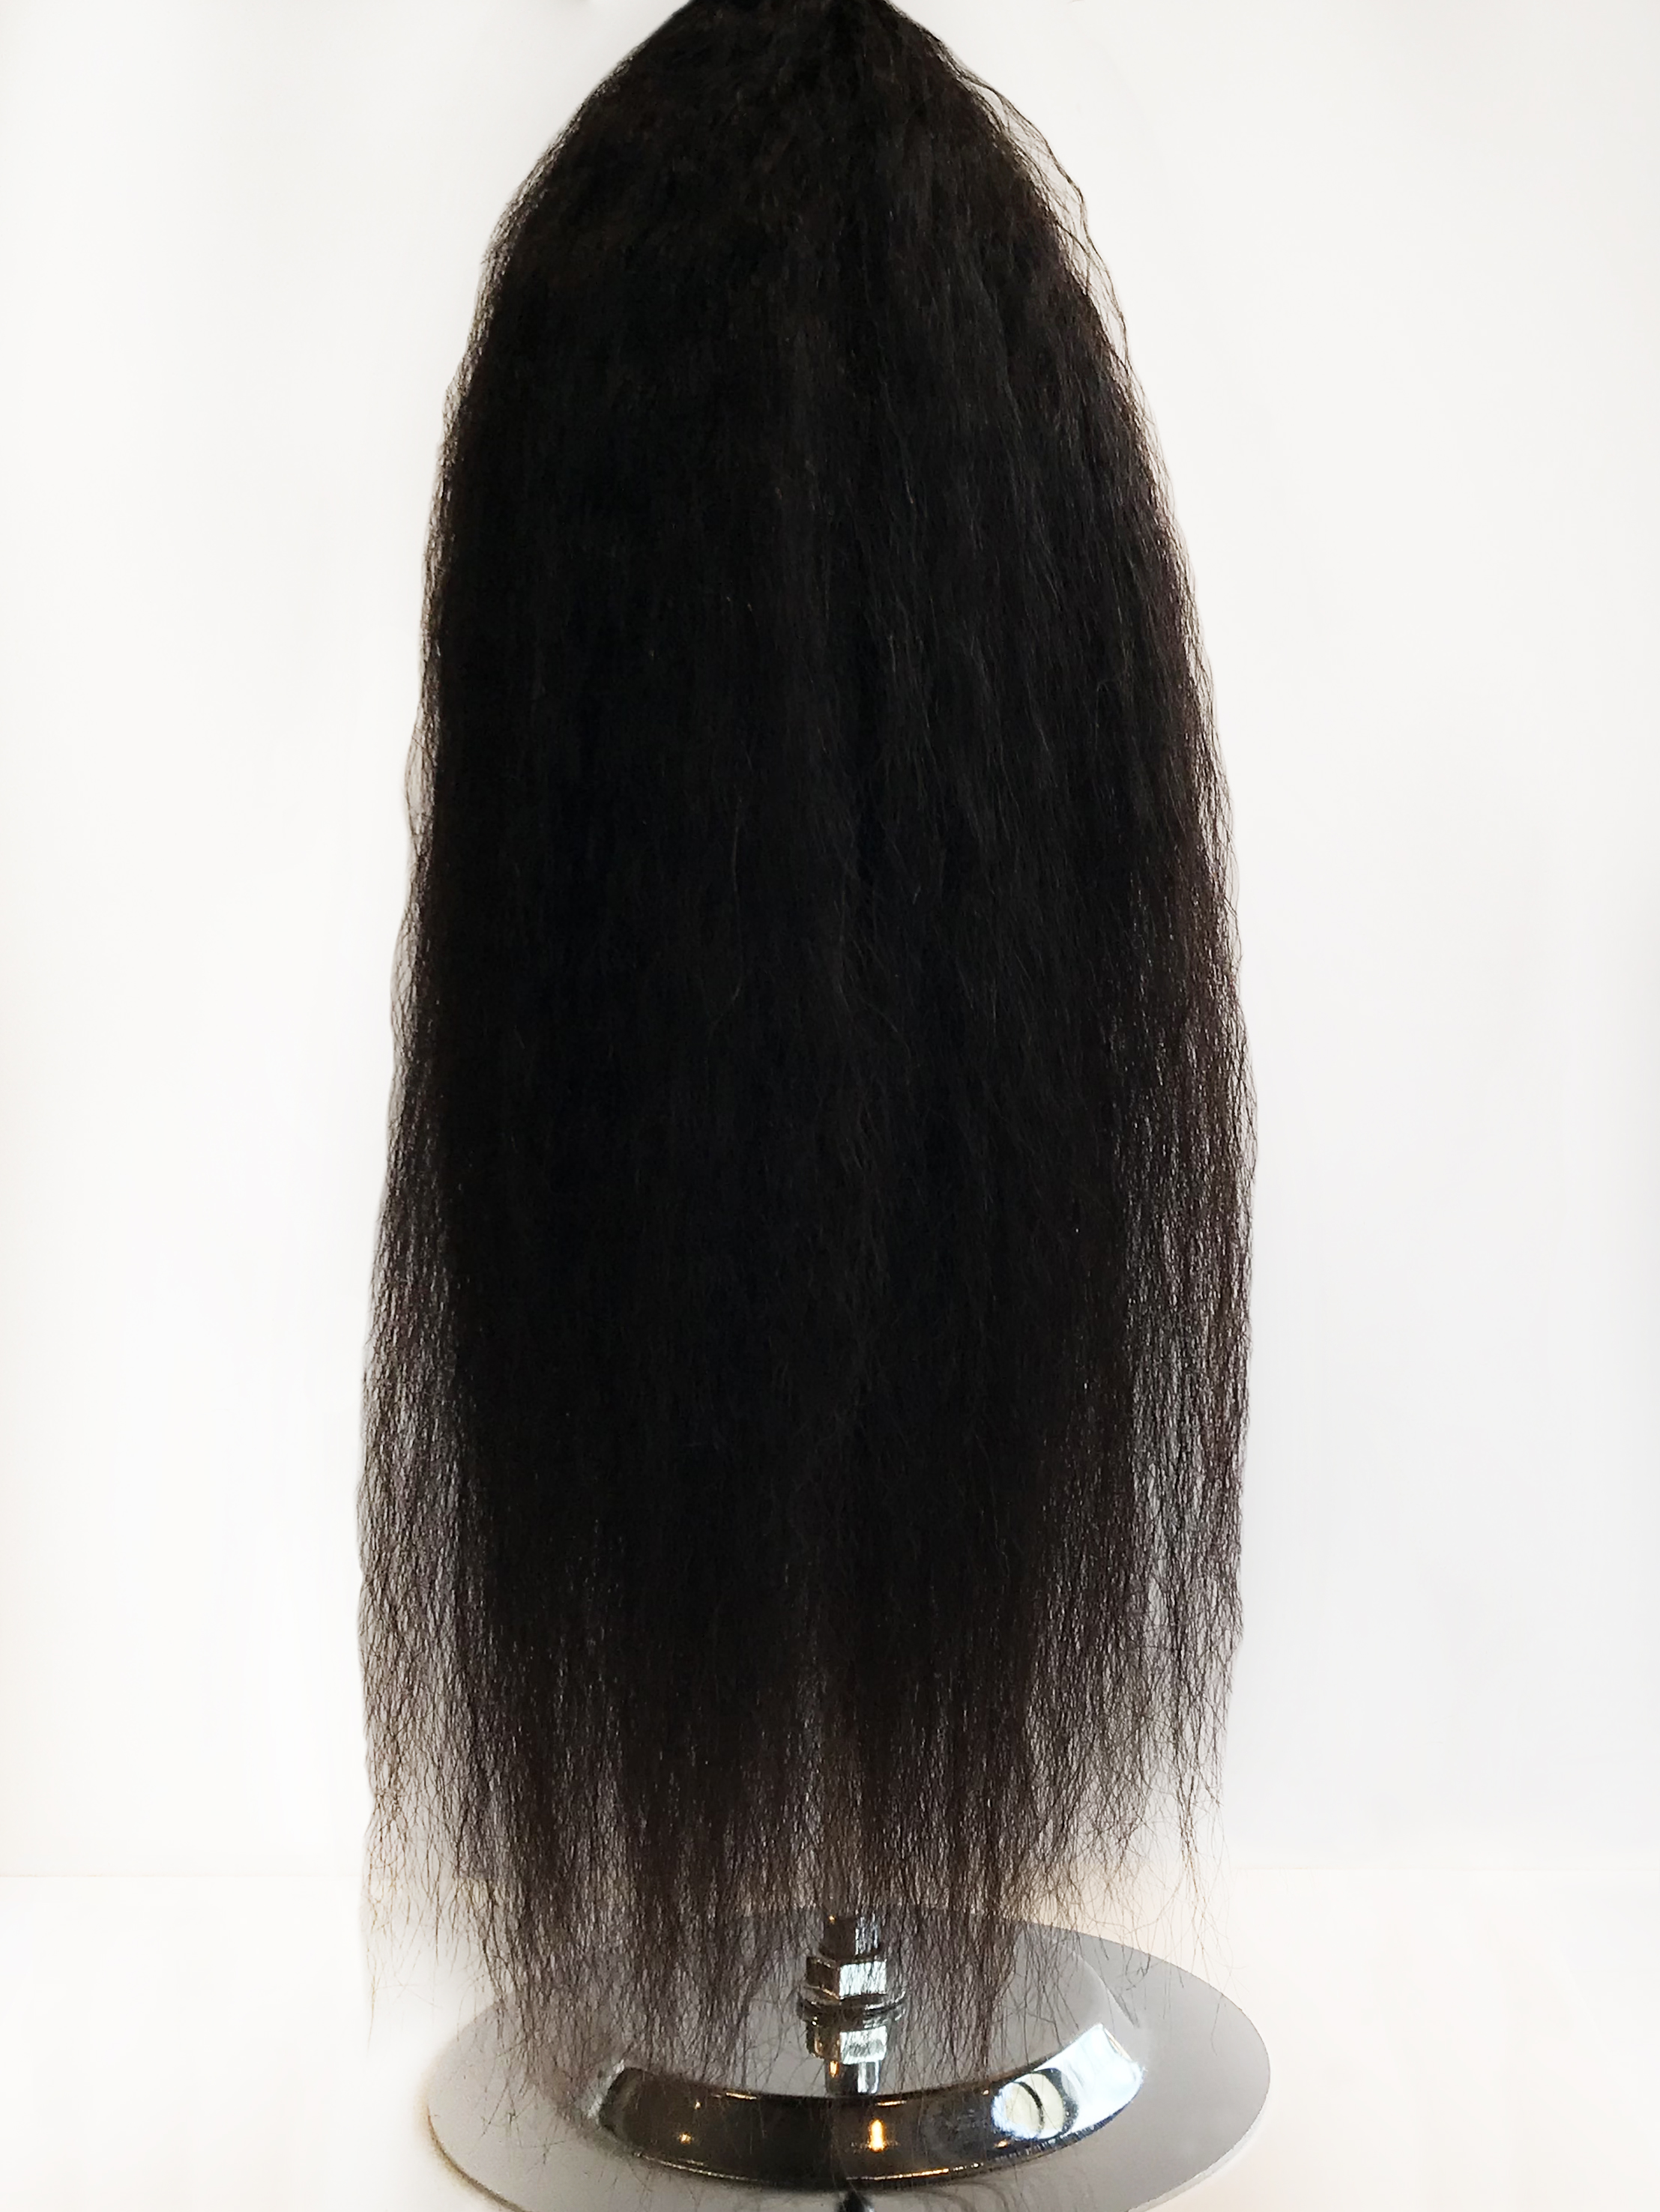 What would blend more flawless with your natural hair straightened or your relaxed texture - than beautifully smooth hair? It will give you shine, movement and the versatility to keep it straight for all occasions.